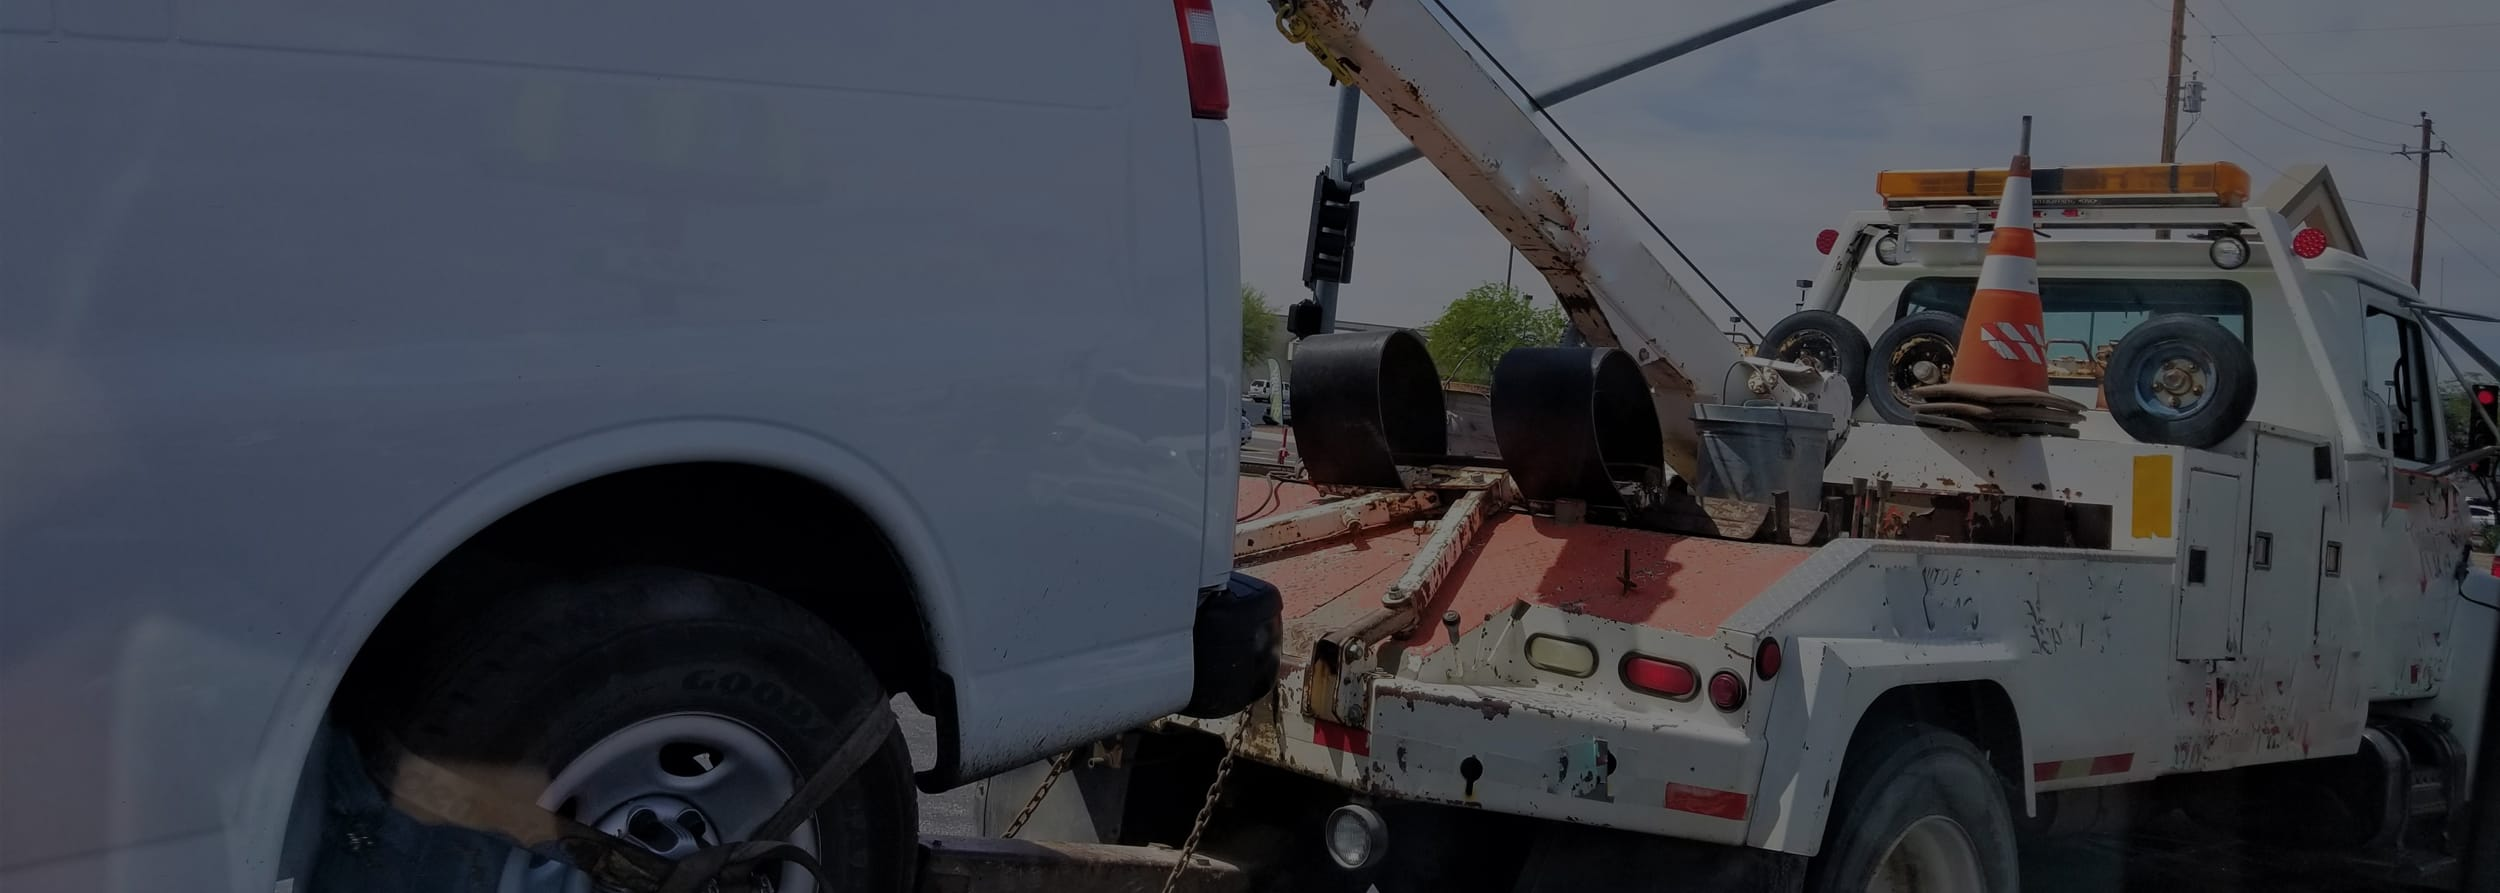 Towing Service Leads header image